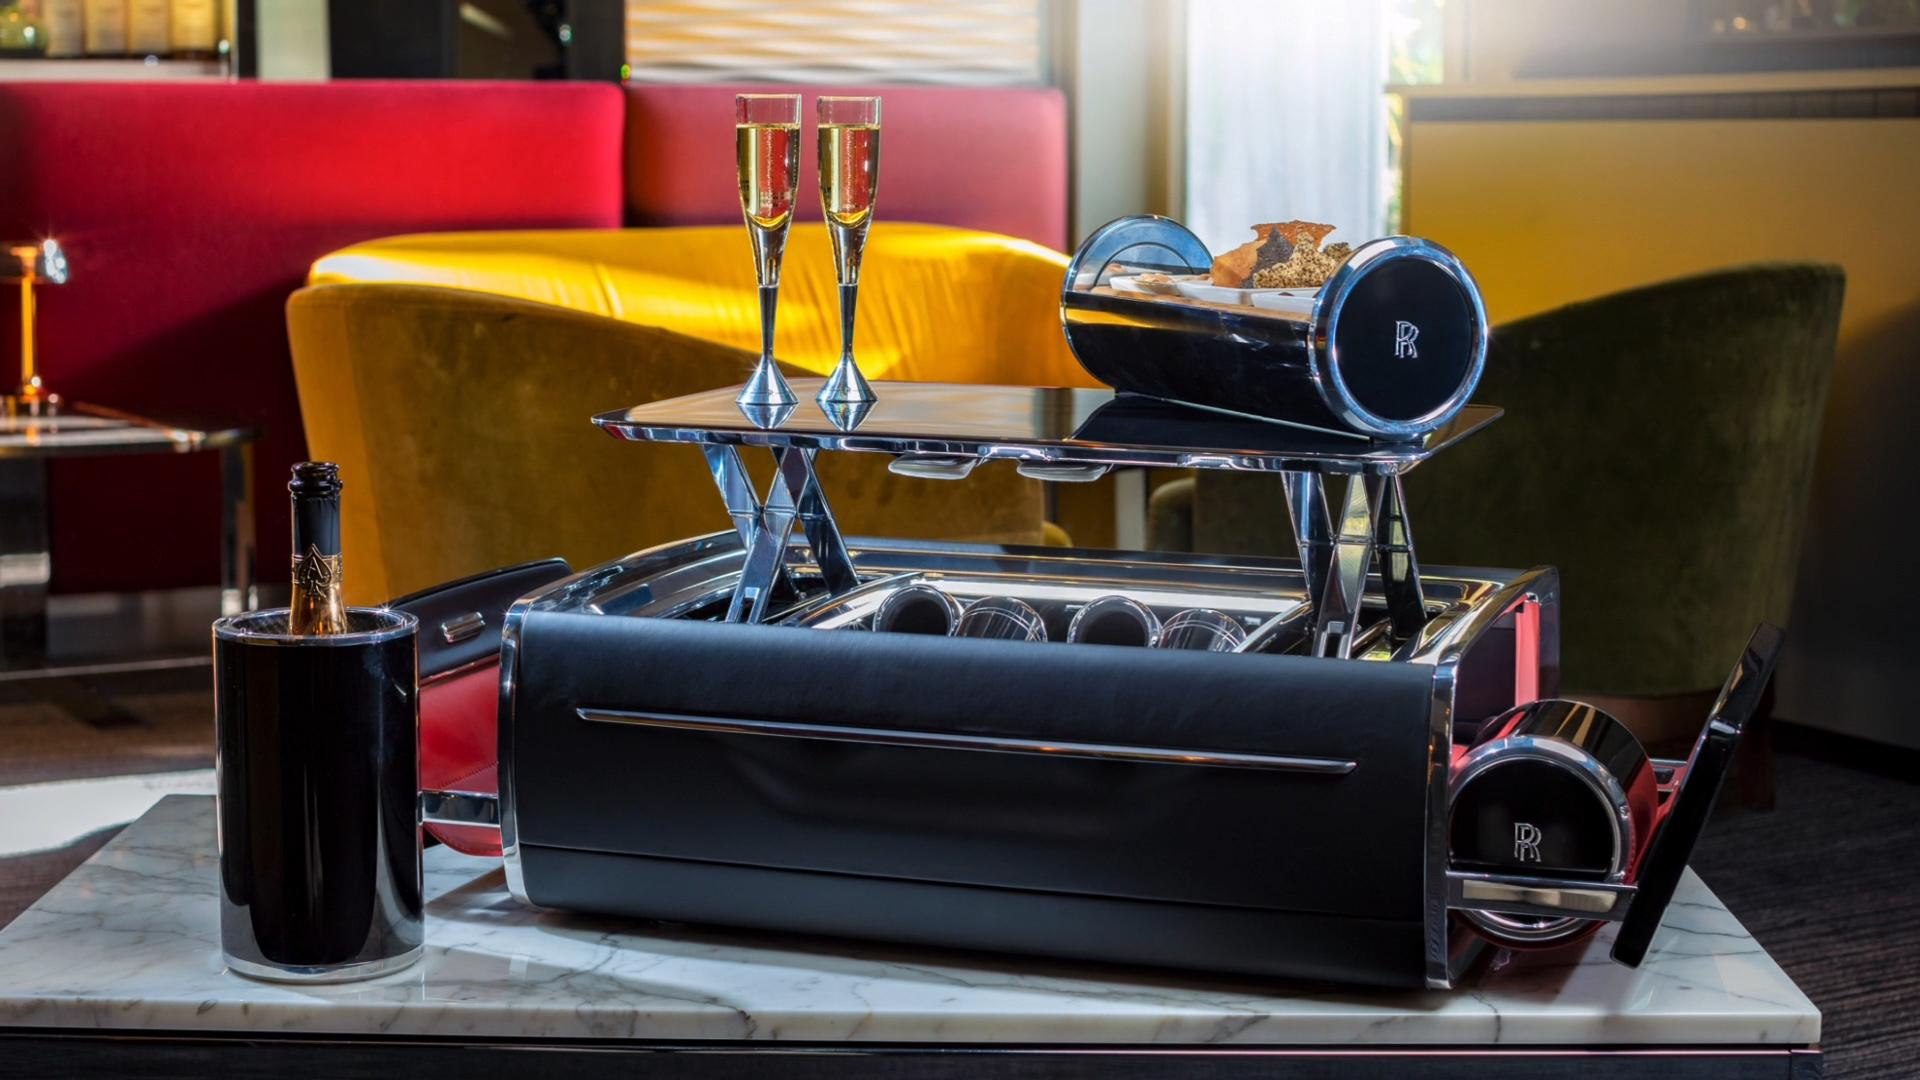 The Rolls-Royce champagne chest will hold your wine and make you poor